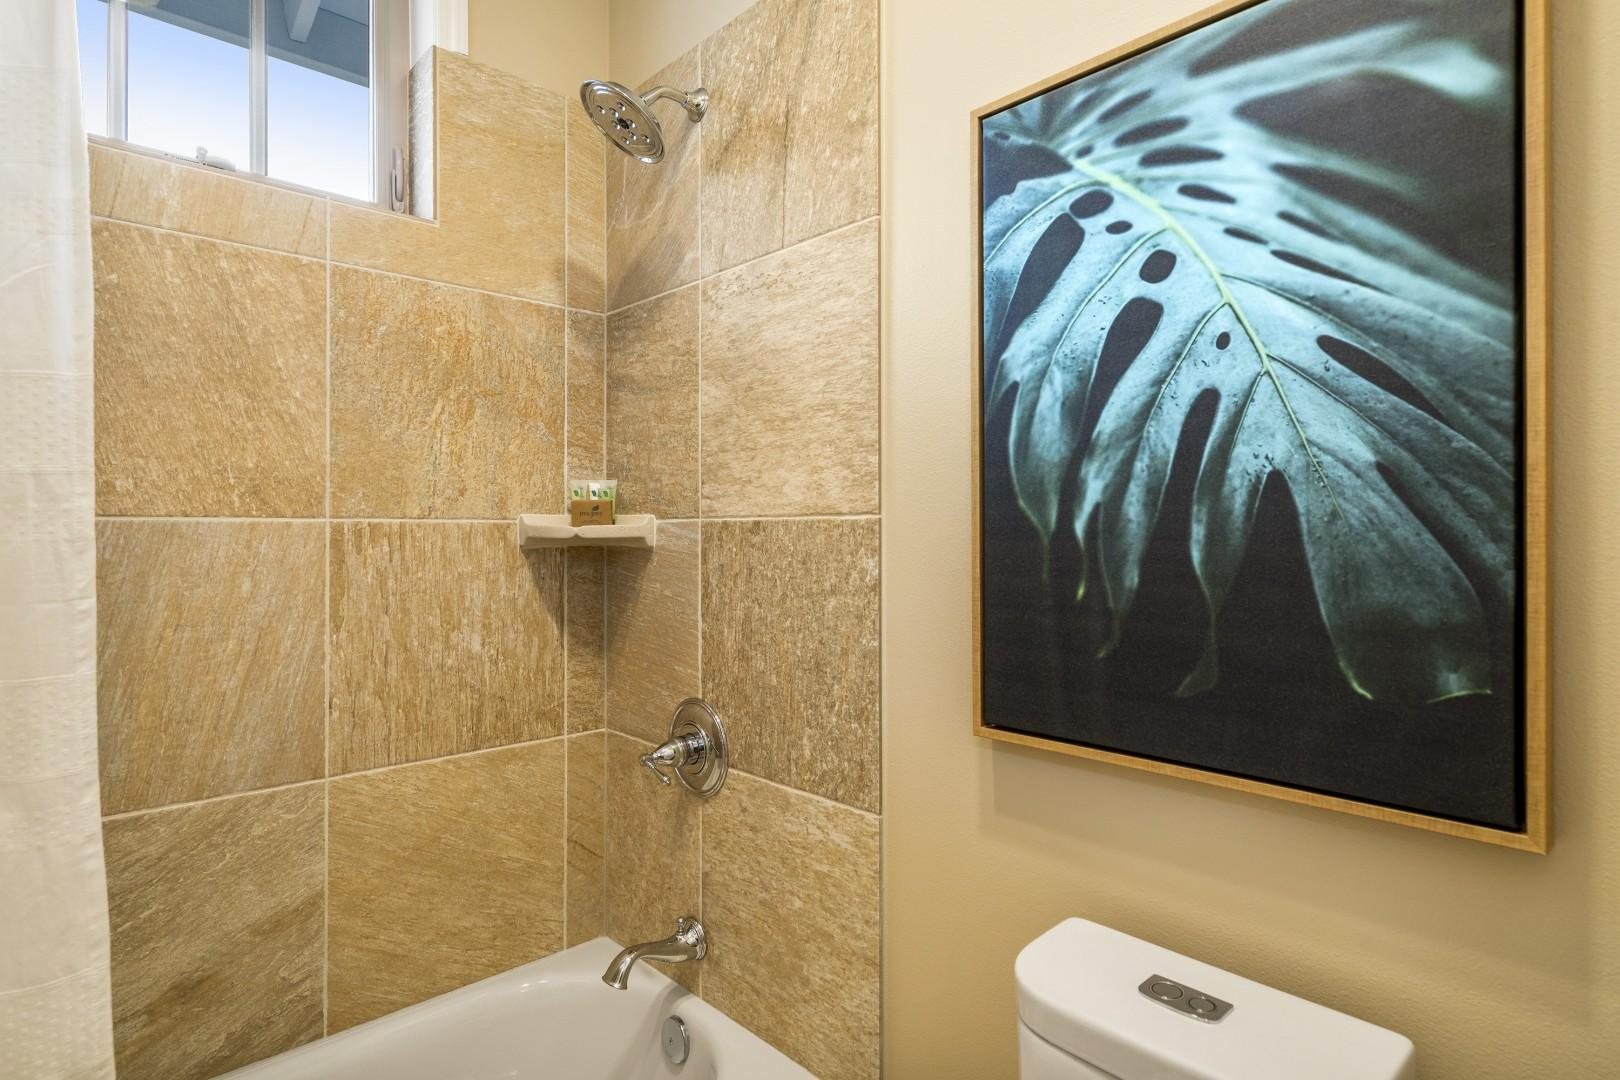 Upstairs guest bathroom with tub/shower combo